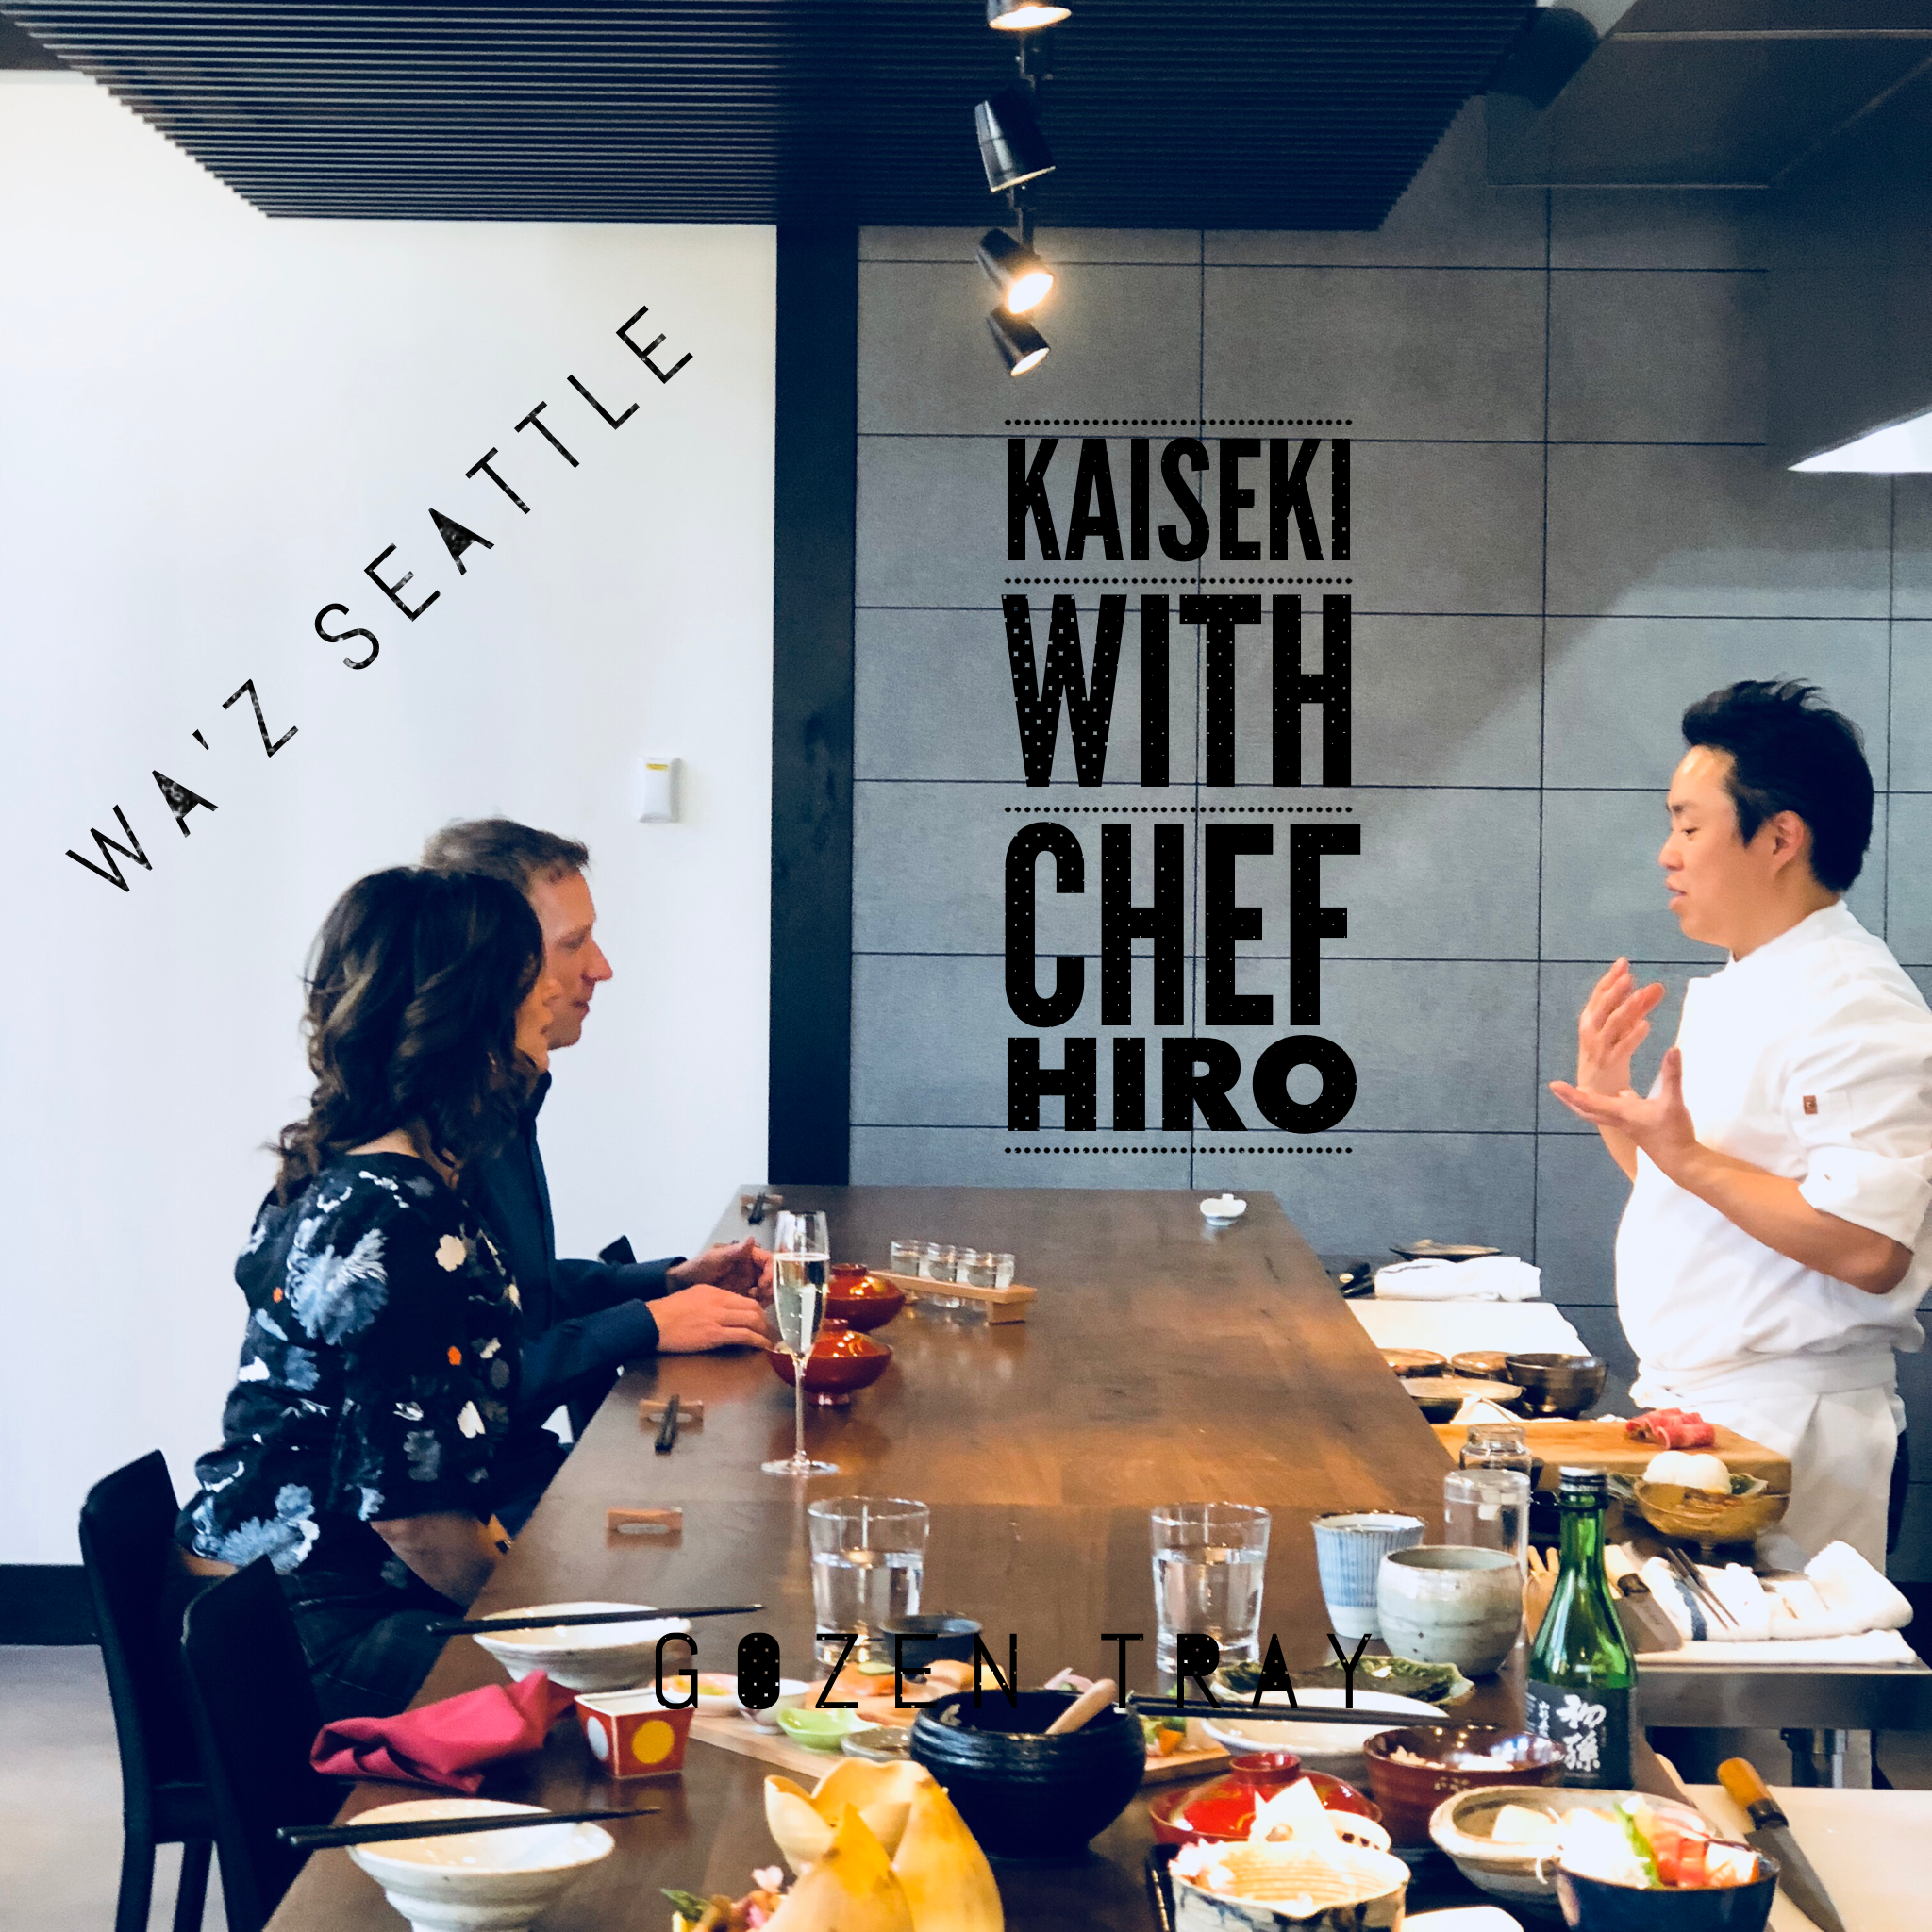 A seat at the chef's counter allows for interaction with Chef Hiro, who welcomes questions about the food and kaiseki tradition.